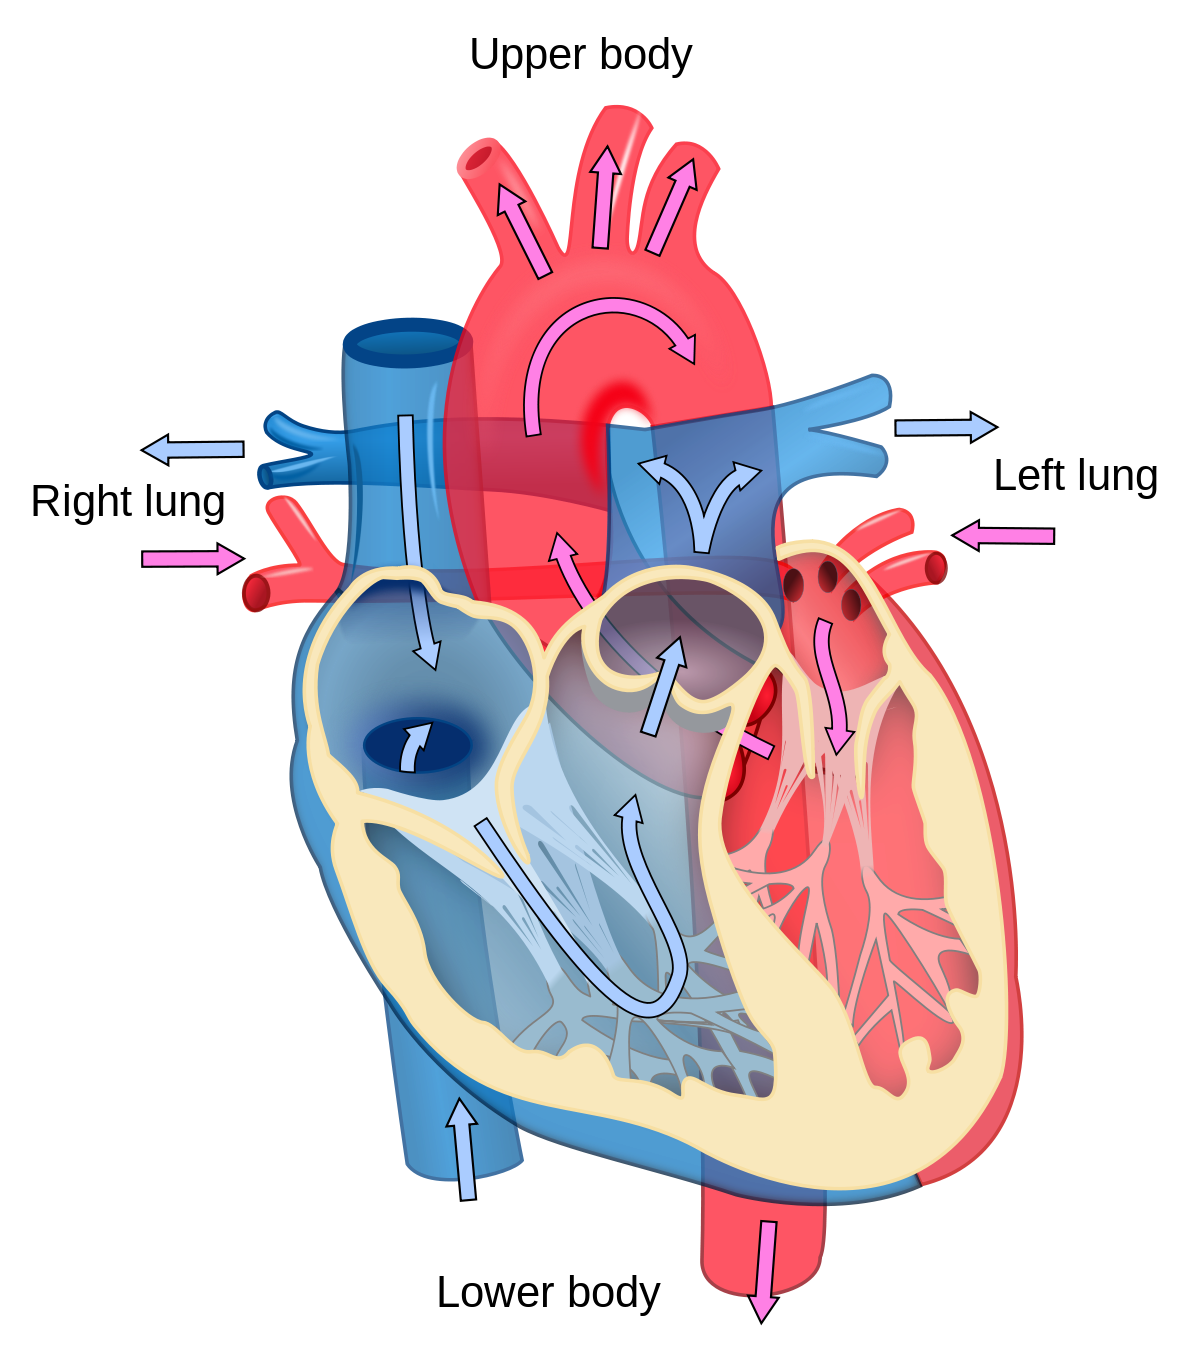 Circuit heart png. Cardiology wikipedia